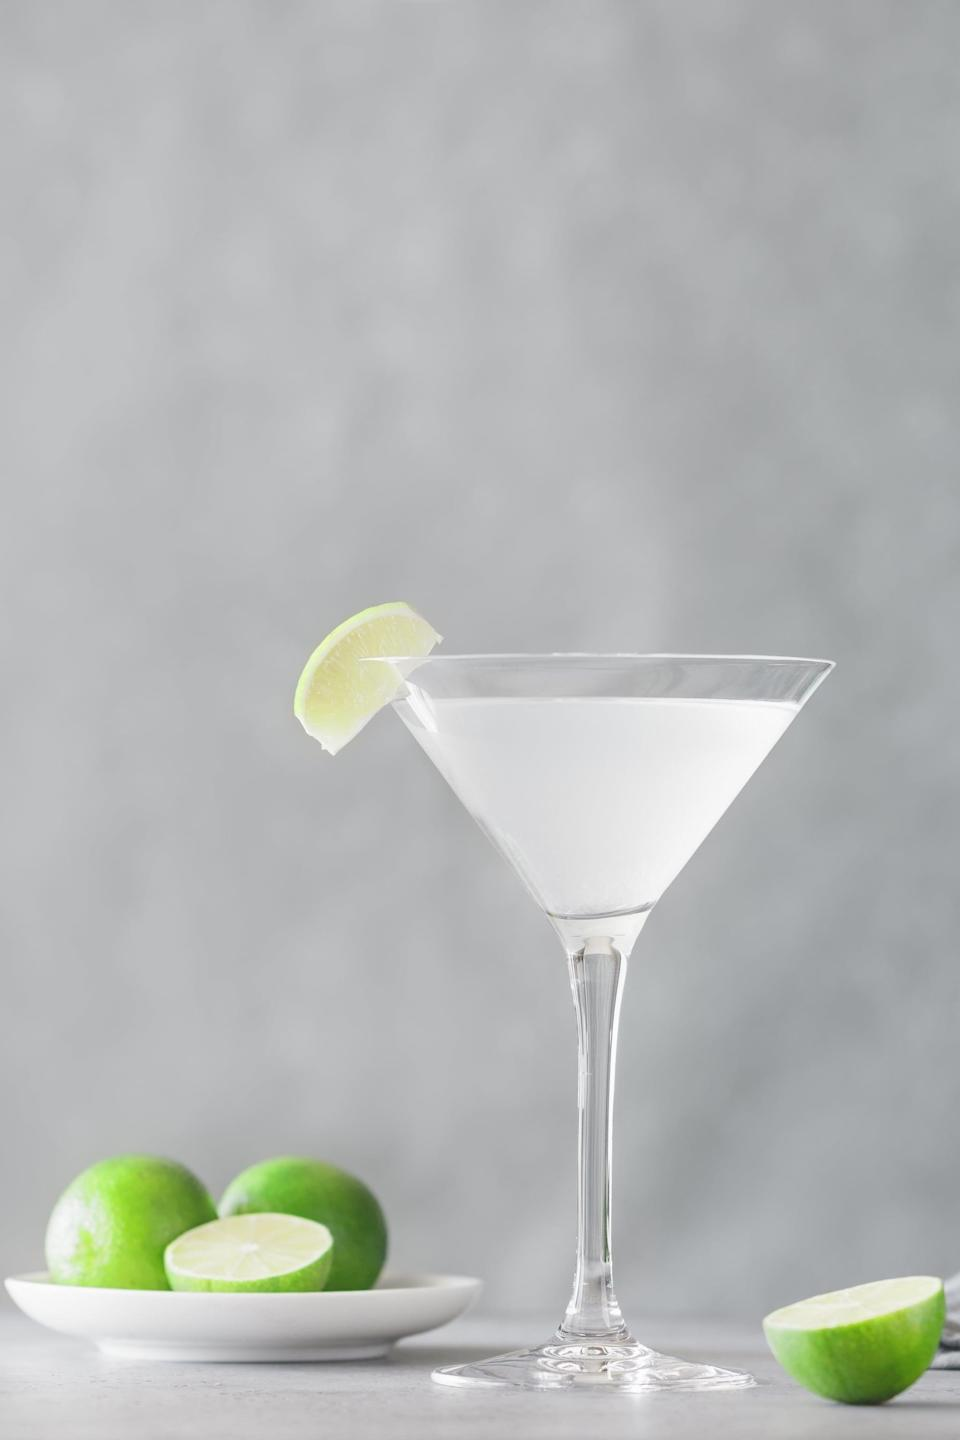 """<p>The kamikaze is quite simply a vodka margarita, and dang, it's <em>good</em>. Garnish the rim with lime slices to make it a drink worth envying.</p> <p><strong>Get the recipe</strong>: <a href=""""https://www.popsugar.com/buy?url=https%3A%2F%2Fwww.thespruceeats.com%2Fkamikaze-cocktail-recipe-759313&p_name=kamikaze&retailer=thespruceeats.com&evar1=yum%3Aus&evar9=47471653&evar98=https%3A%2F%2Fwww.popsugar.com%2Ffood%2Fphoto-gallery%2F47471653%2Fimage%2F47475207%2FWest-Virginia-Kamikaze&list1=cocktails%2Cdrinks%2Calcohol%2Crecipes&prop13=api&pdata=1"""" class=""""link rapid-noclick-resp"""" rel=""""nofollow noopener"""" target=""""_blank"""" data-ylk=""""slk:kamikaze"""">kamikaze</a></p>"""